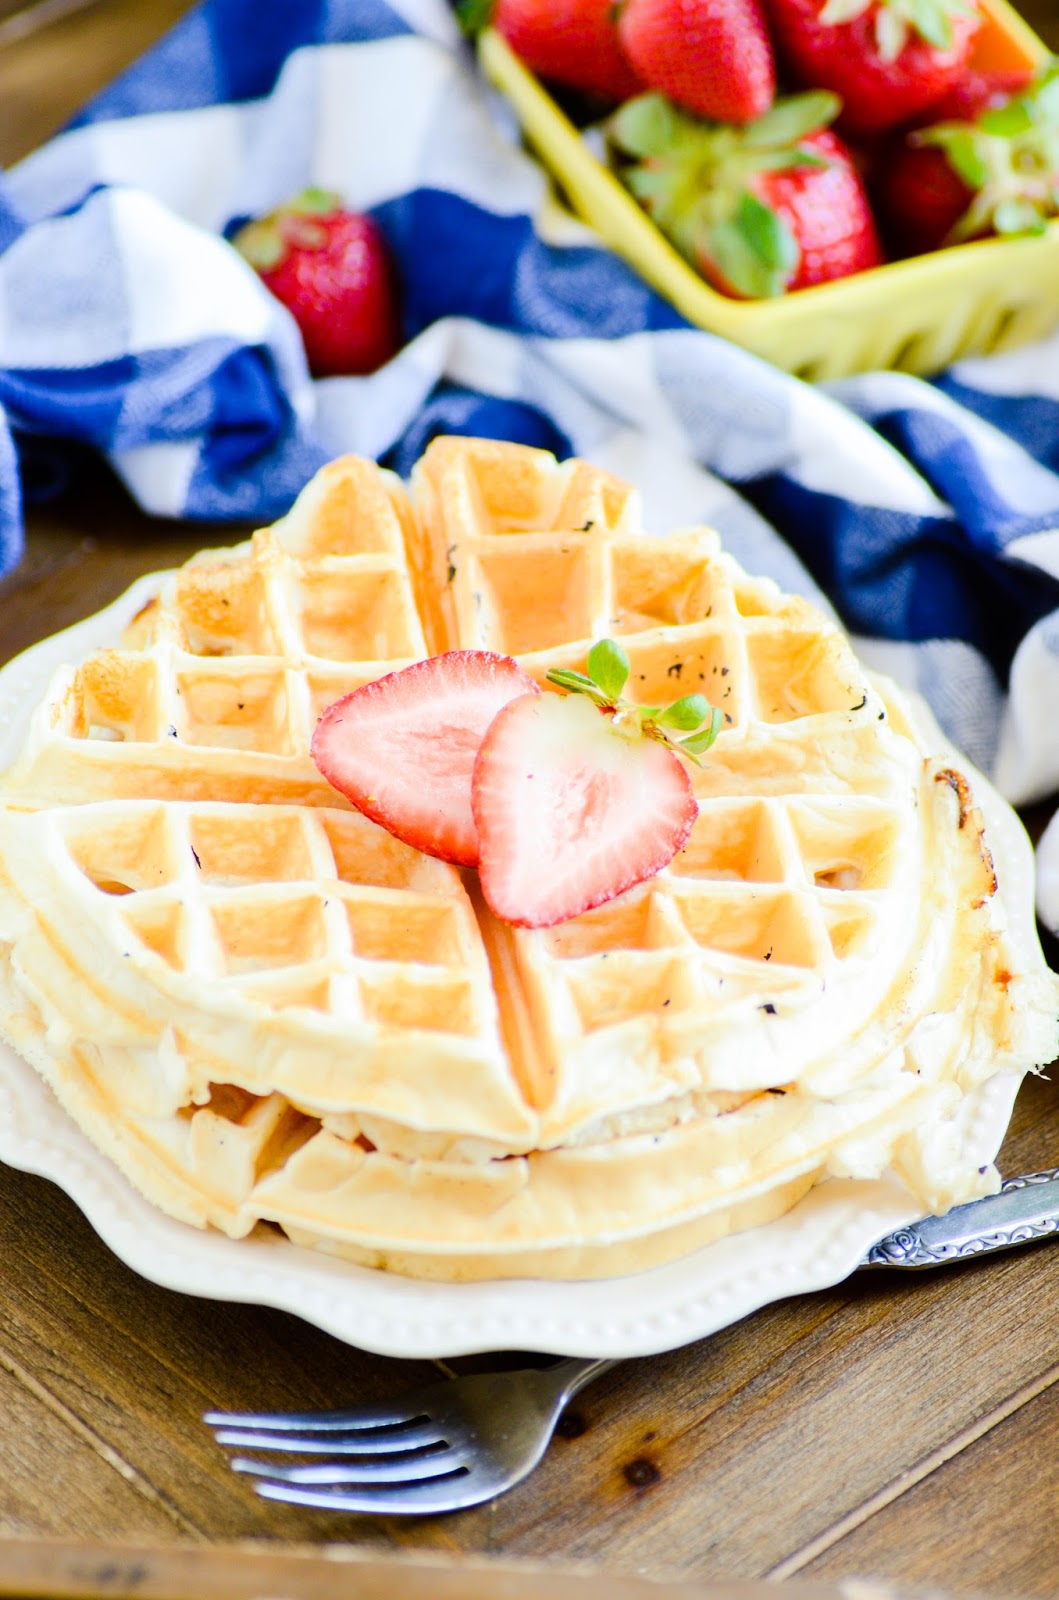 These Soft & Fluffy Protein Waffles are a delicious and nutrition-packed way to start the day! Two BIG waffles with 15g of protein and practically melt in your mouth.